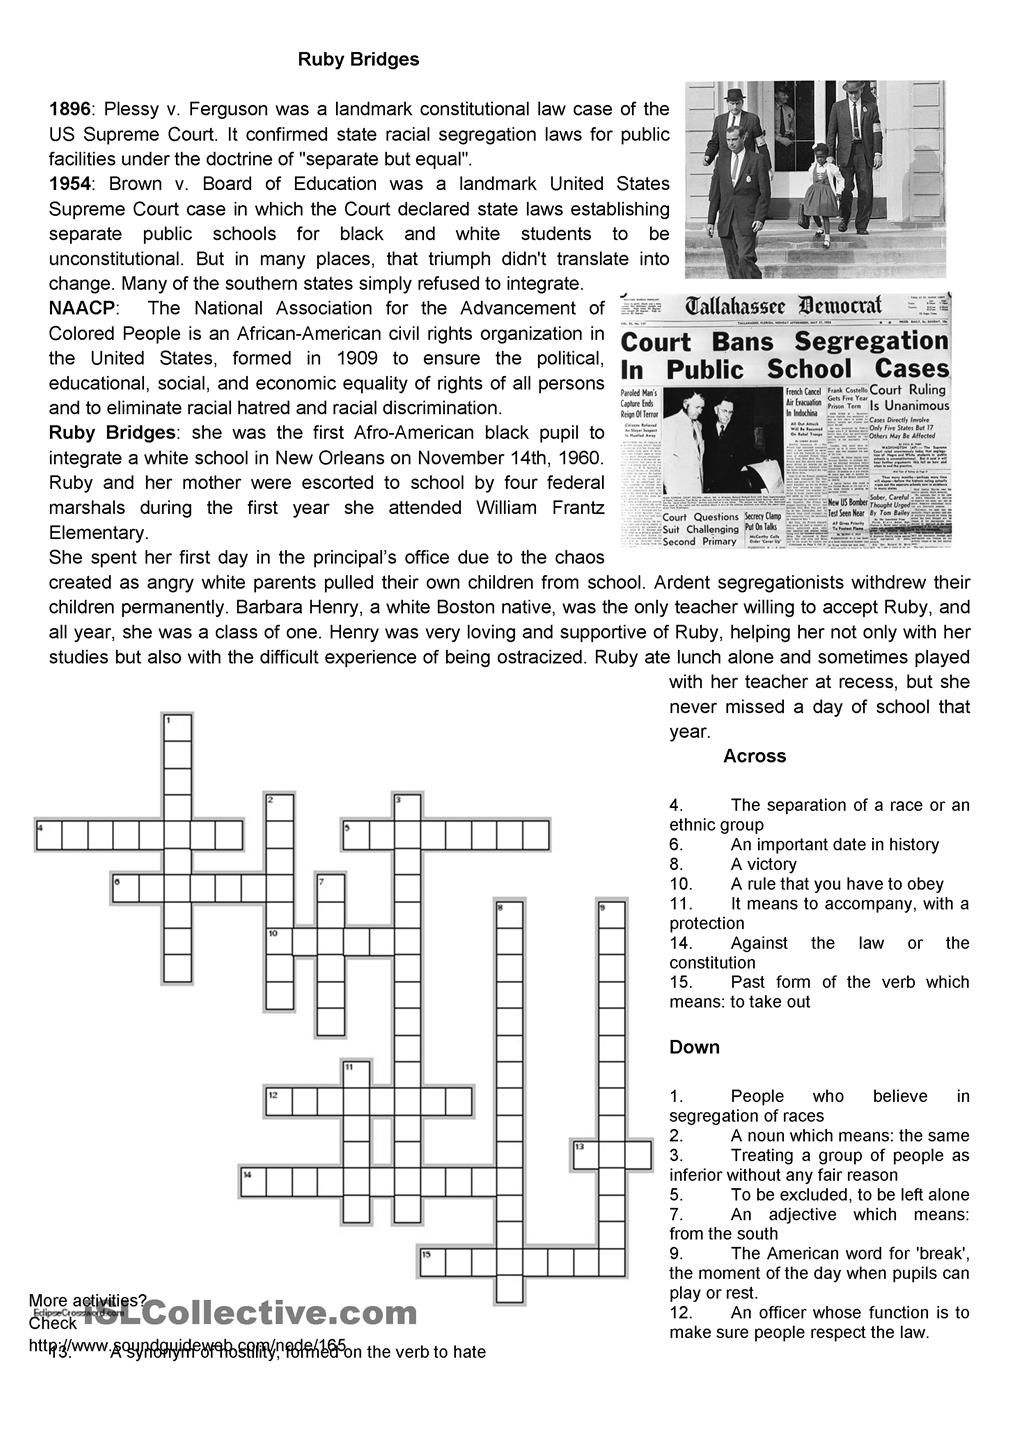 worksheet Civil Rights Worksheets civil rights ruby bridges esl worksheets of the day find this pin and more on learn about rights